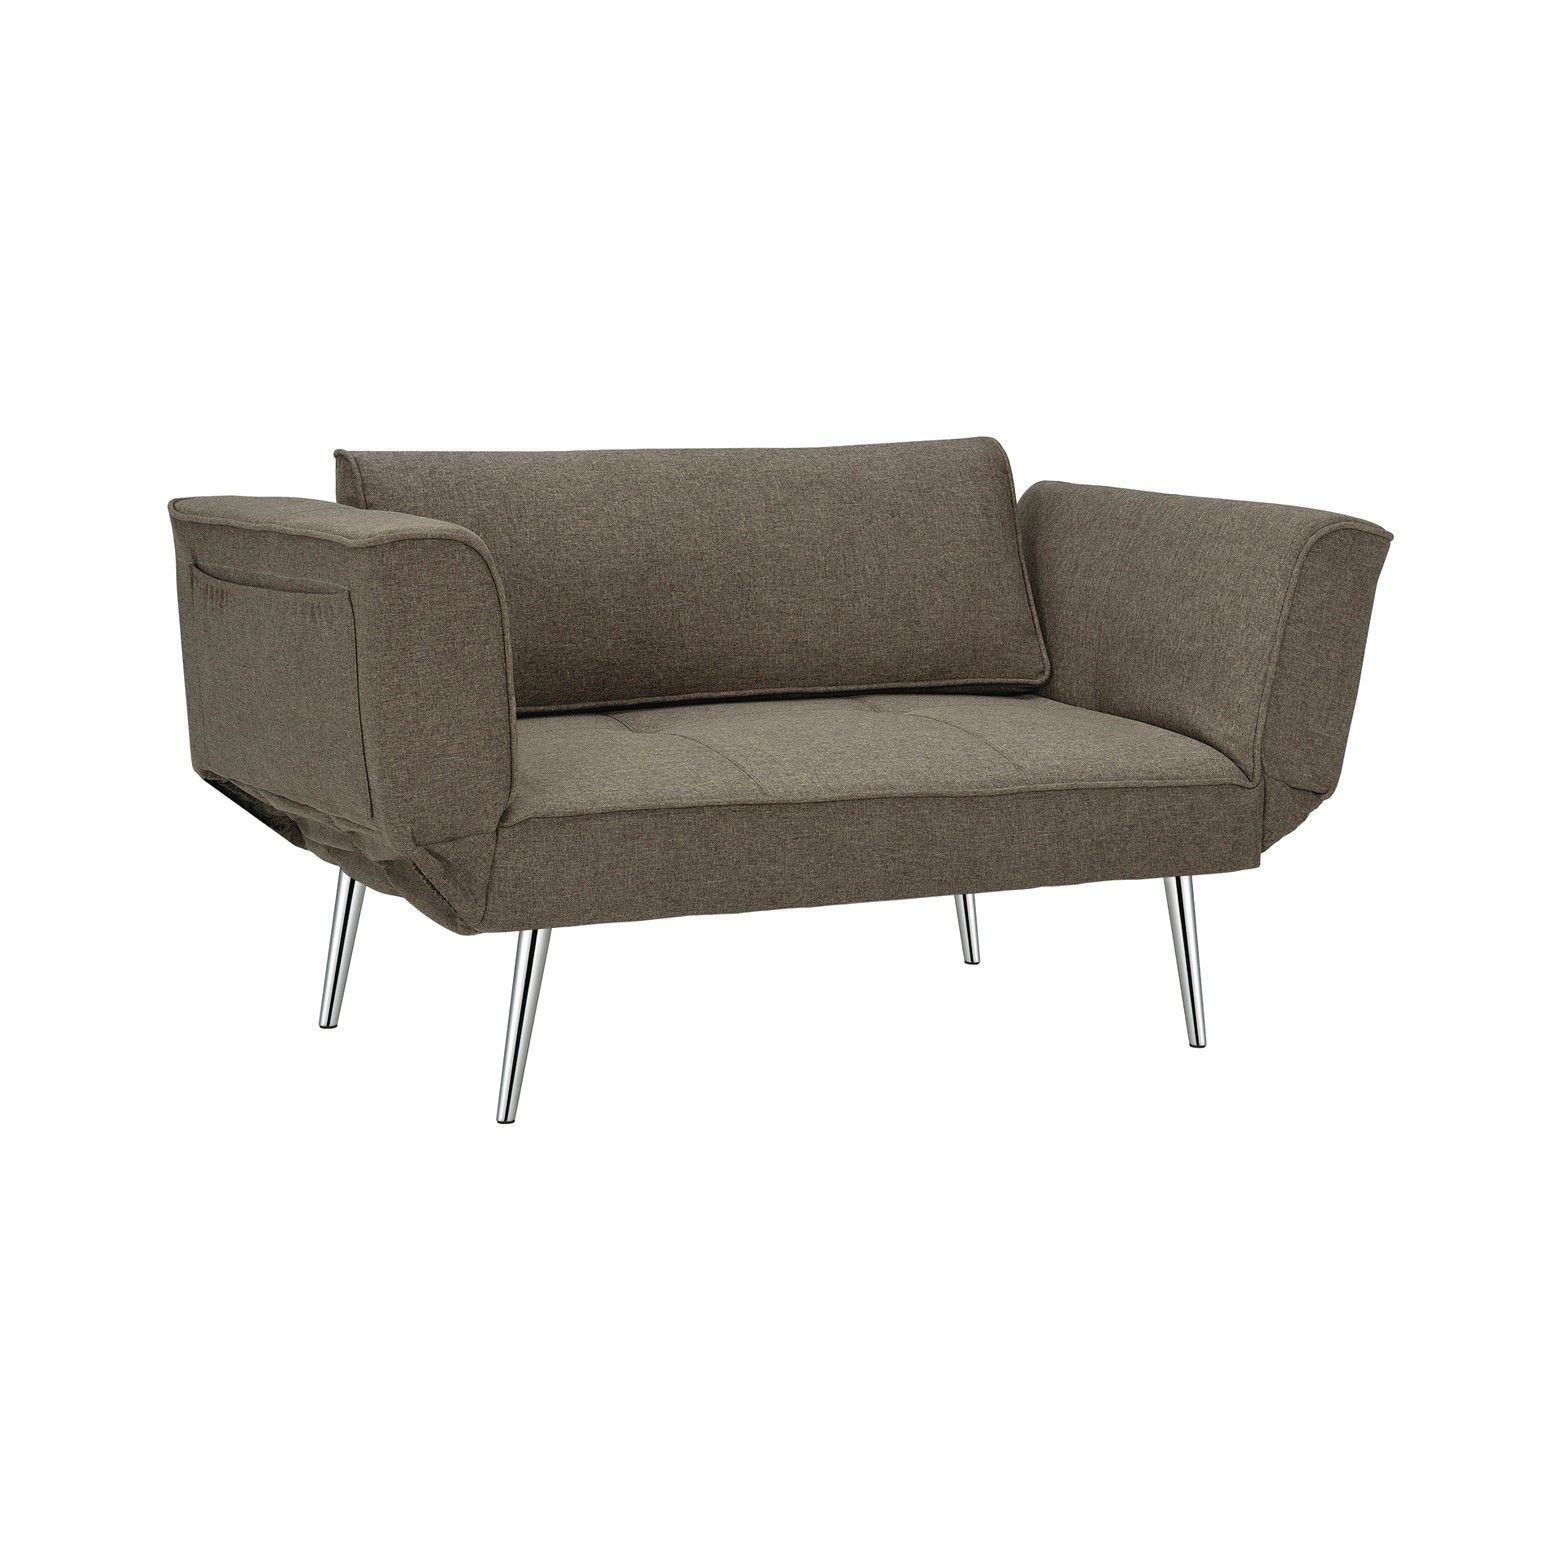 Dorel Home Products Convertible Sofa Grey 76 5 X 30 5 X 6 Inch